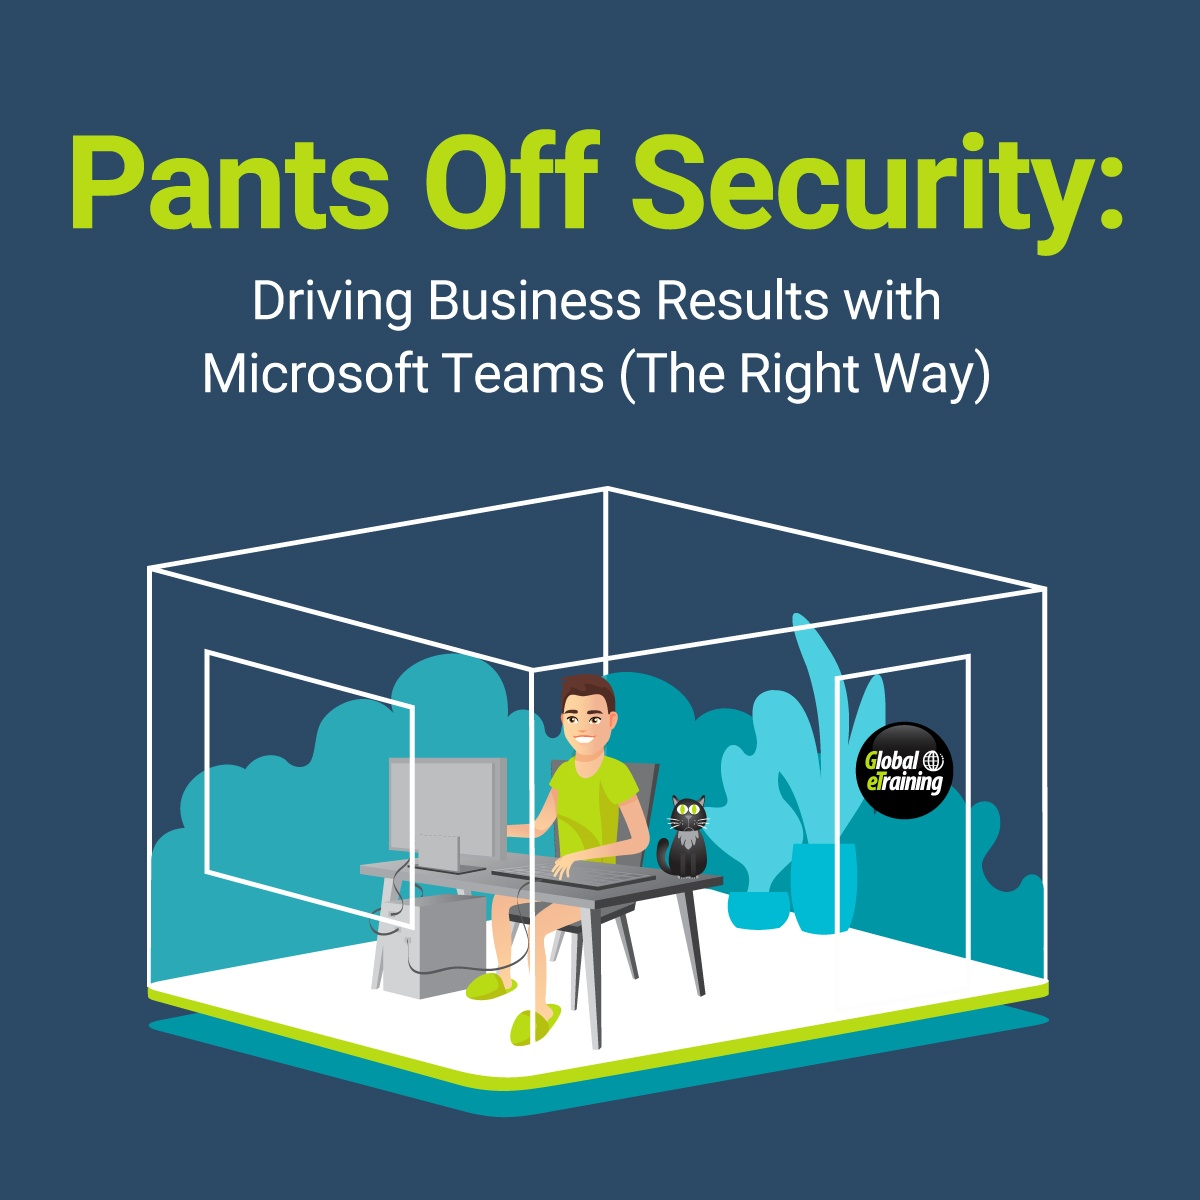 Pants Off Security: Driving Business Results with Microsoft Team (The Right Way)